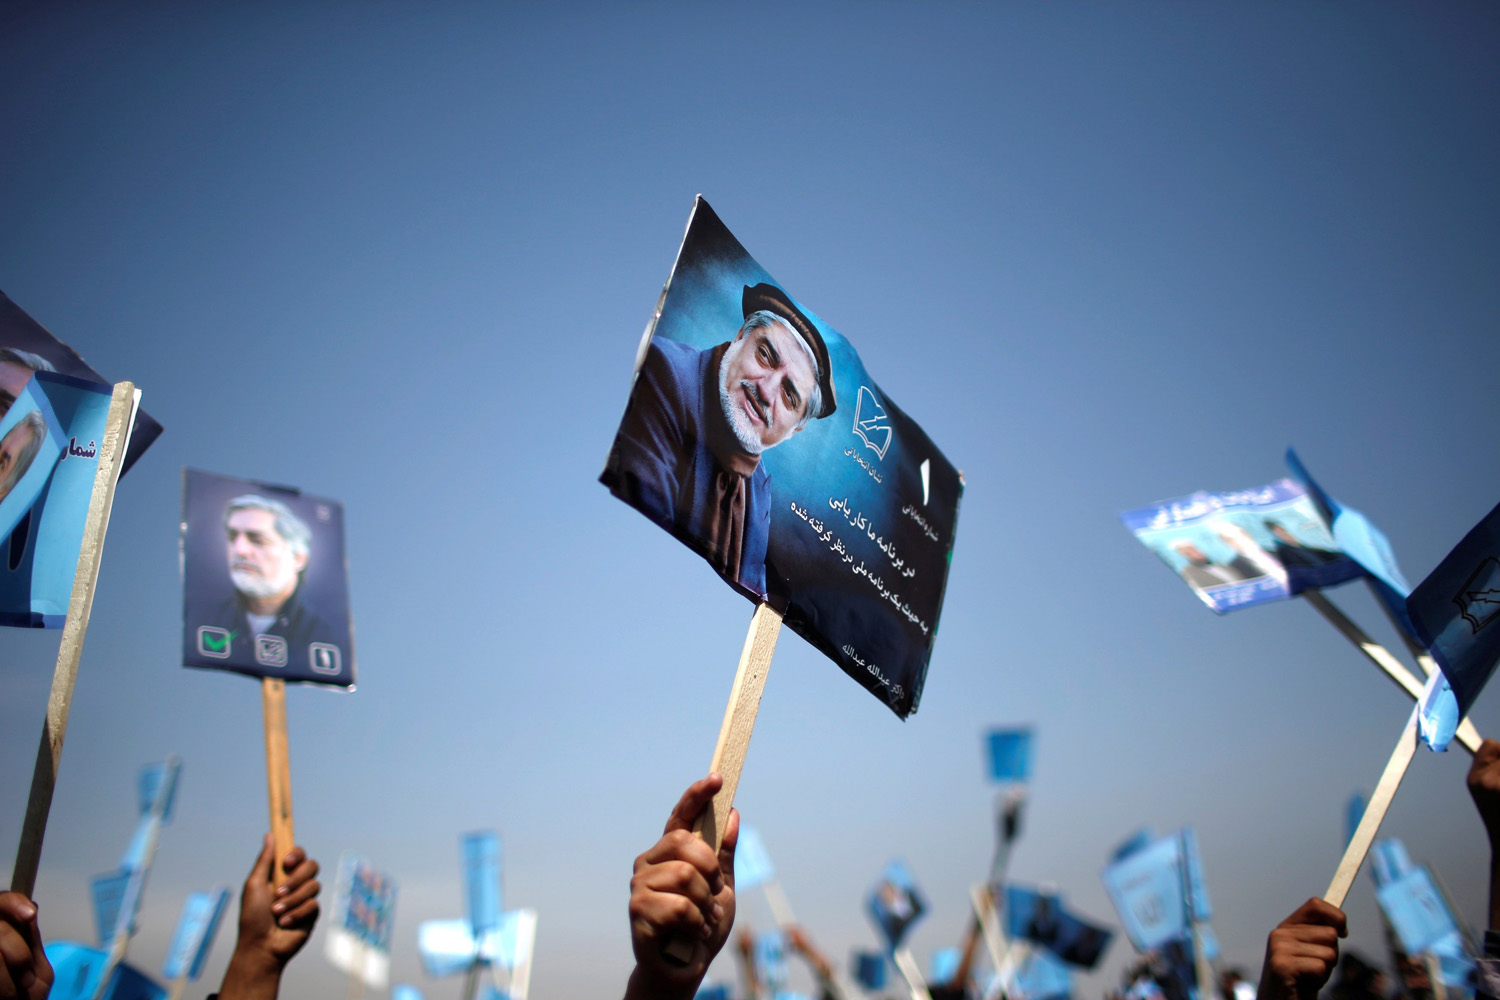 Mar. 20, 2014. Supporters of Afghan presidential candidate Abdullah Abdullah hold posters of him during an election rally in Parwan province, northern Afghanistan.